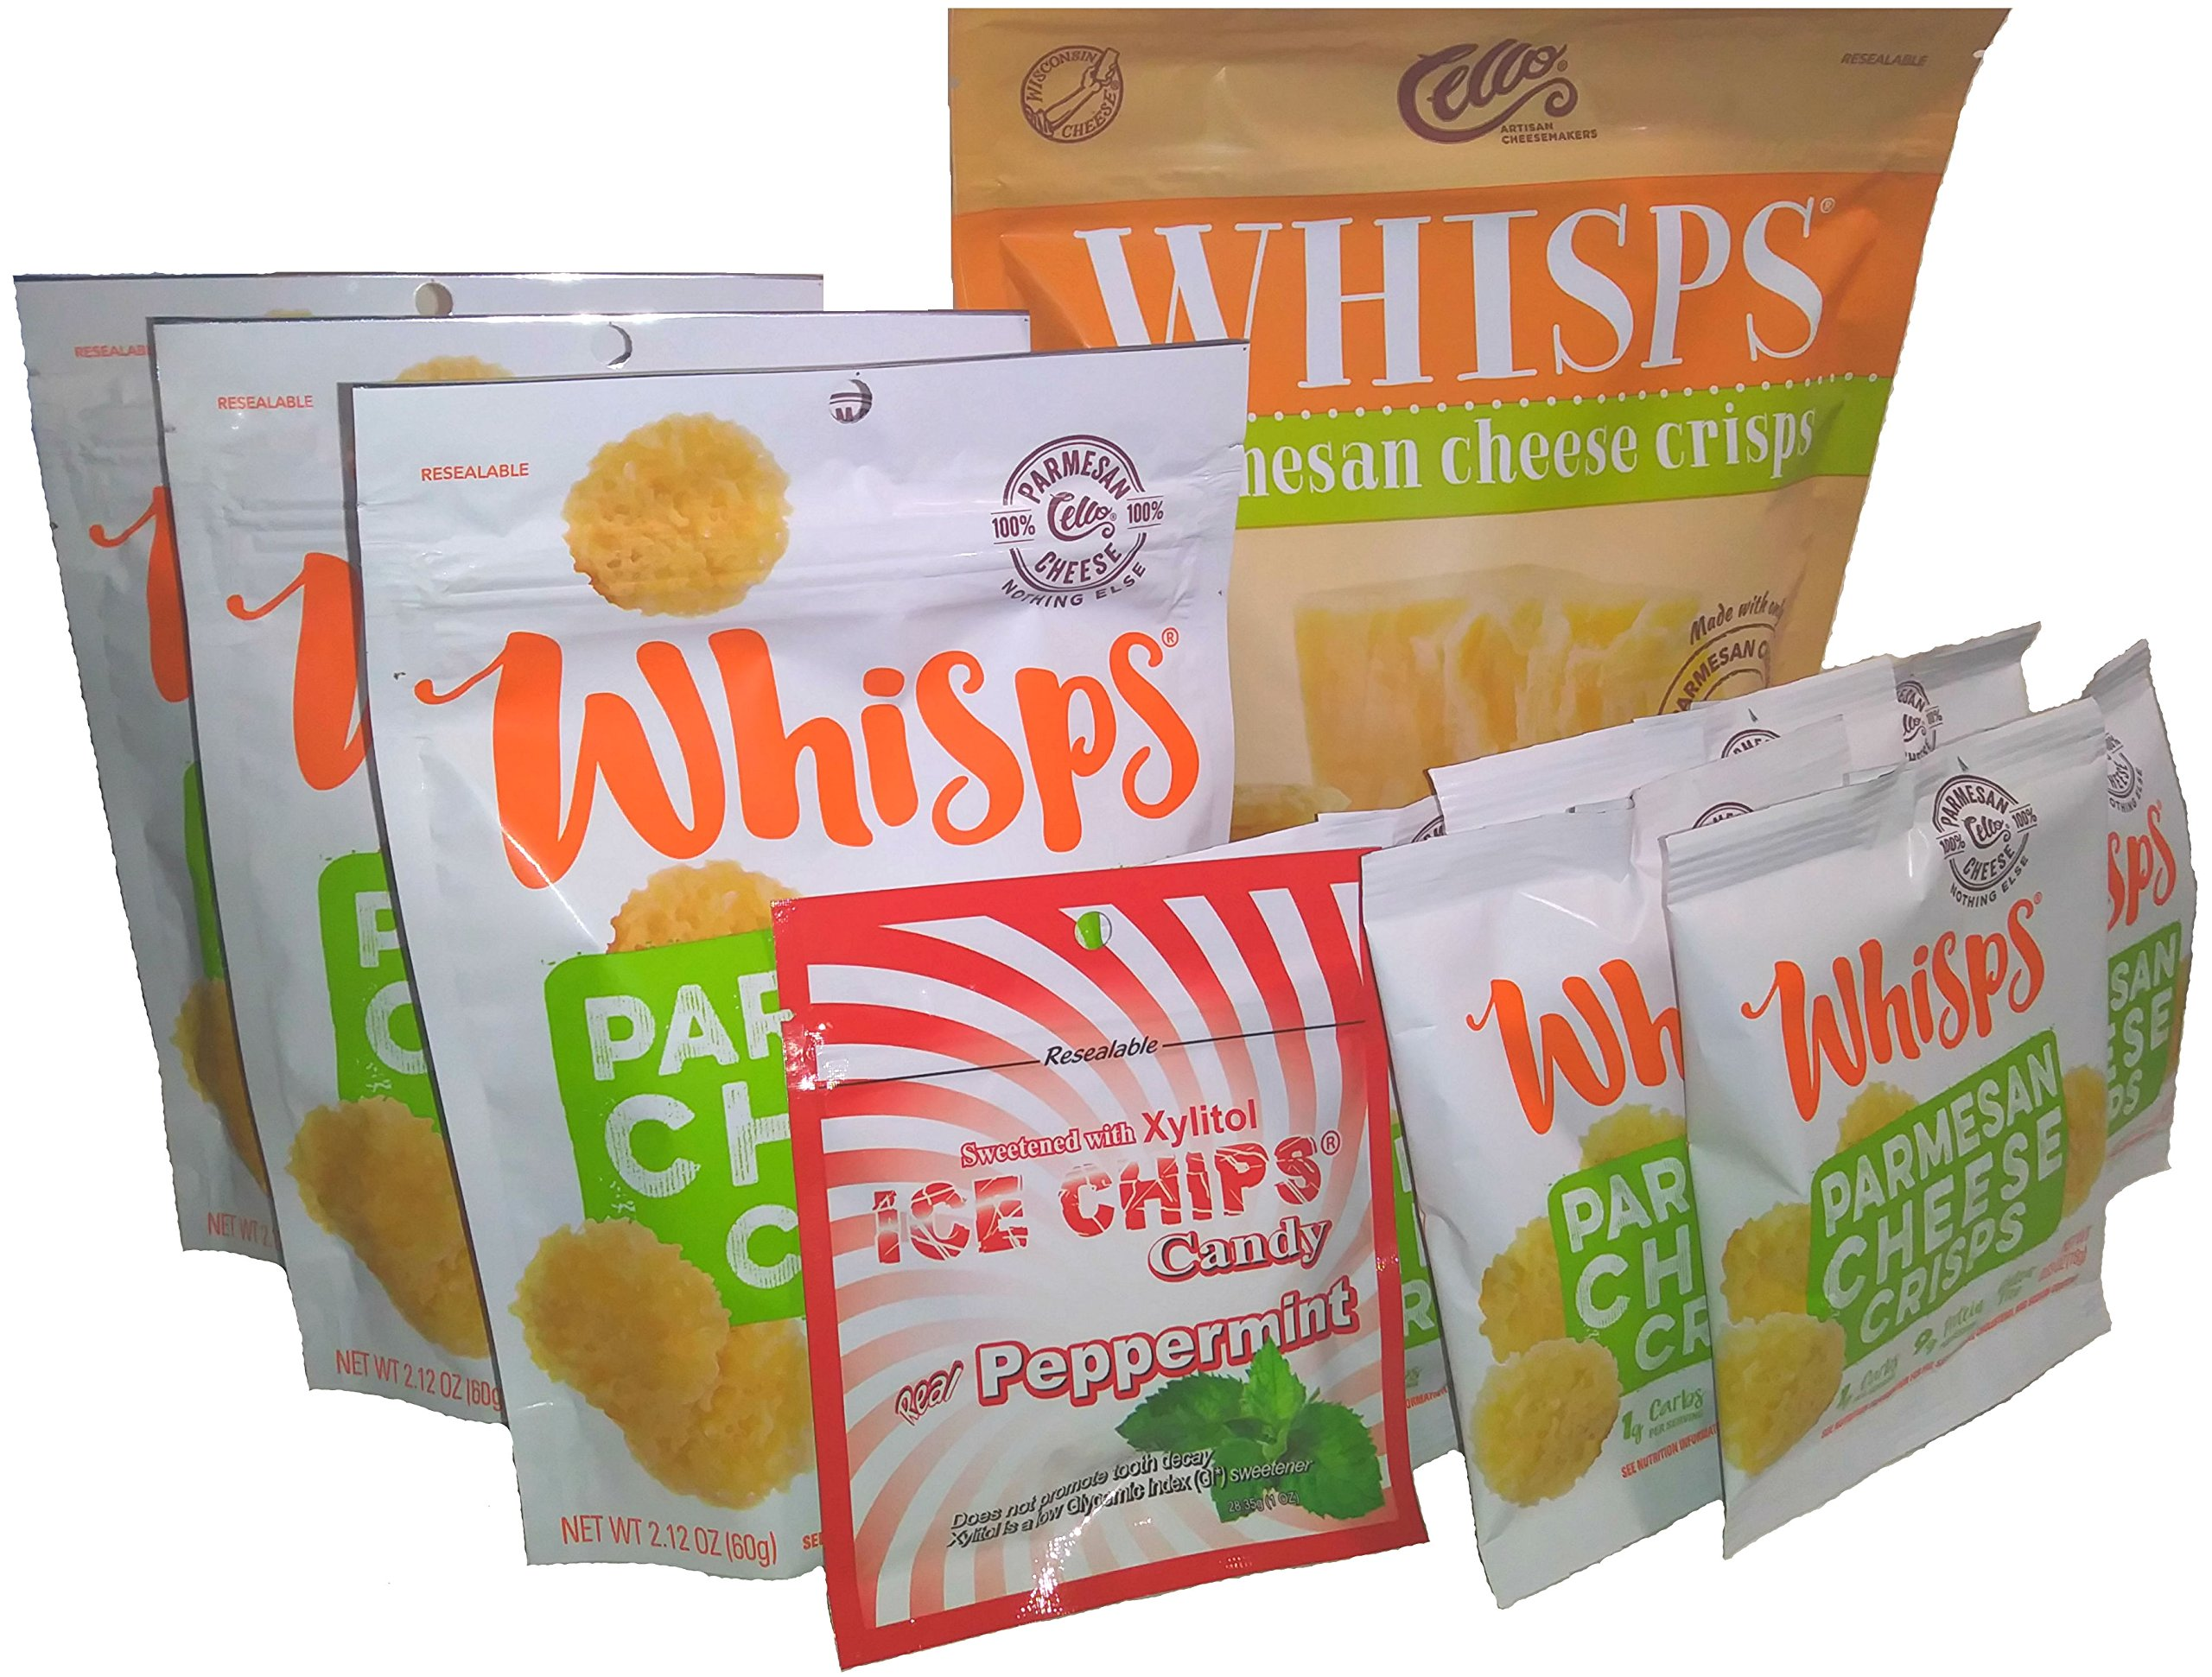 10-Pack Whisps Parmesan Assorted Sizes & Ice Chips Xylitol Peppermint Bundle